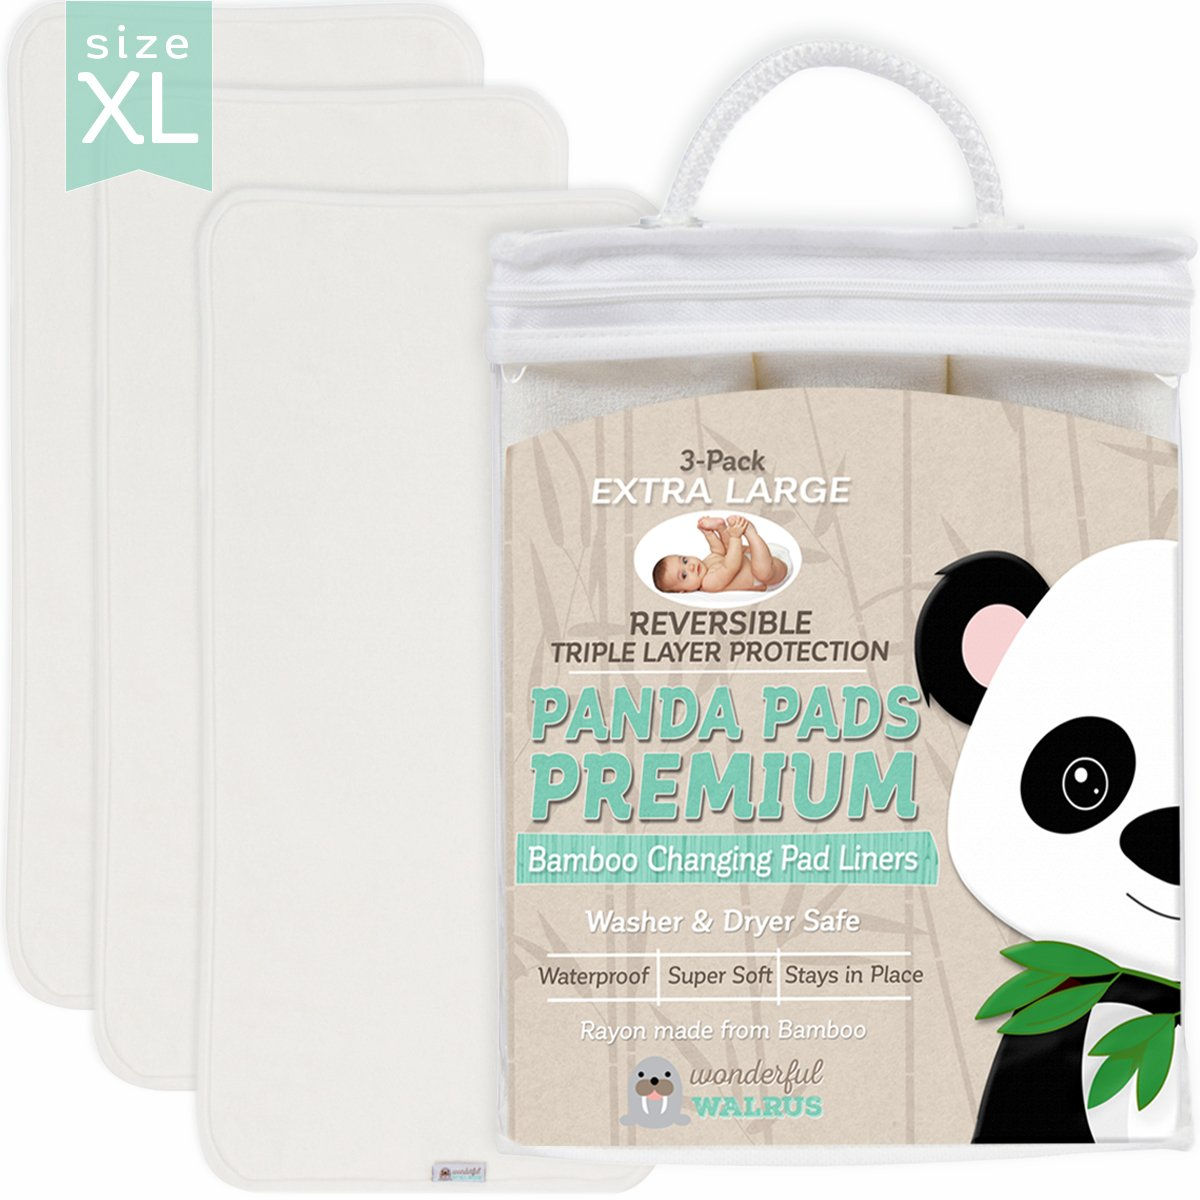 Changing Pad Liners BAMBOO REVERSIBLE 3-PACK - Softer, Thicker, No Stain 3 layer Design. Panda Pads - A Waterproof Mat to cover your Diaper Changing Table, Changing Pad or Mattress Pad. Great Gift! Wonderful Walrus WWPPP01